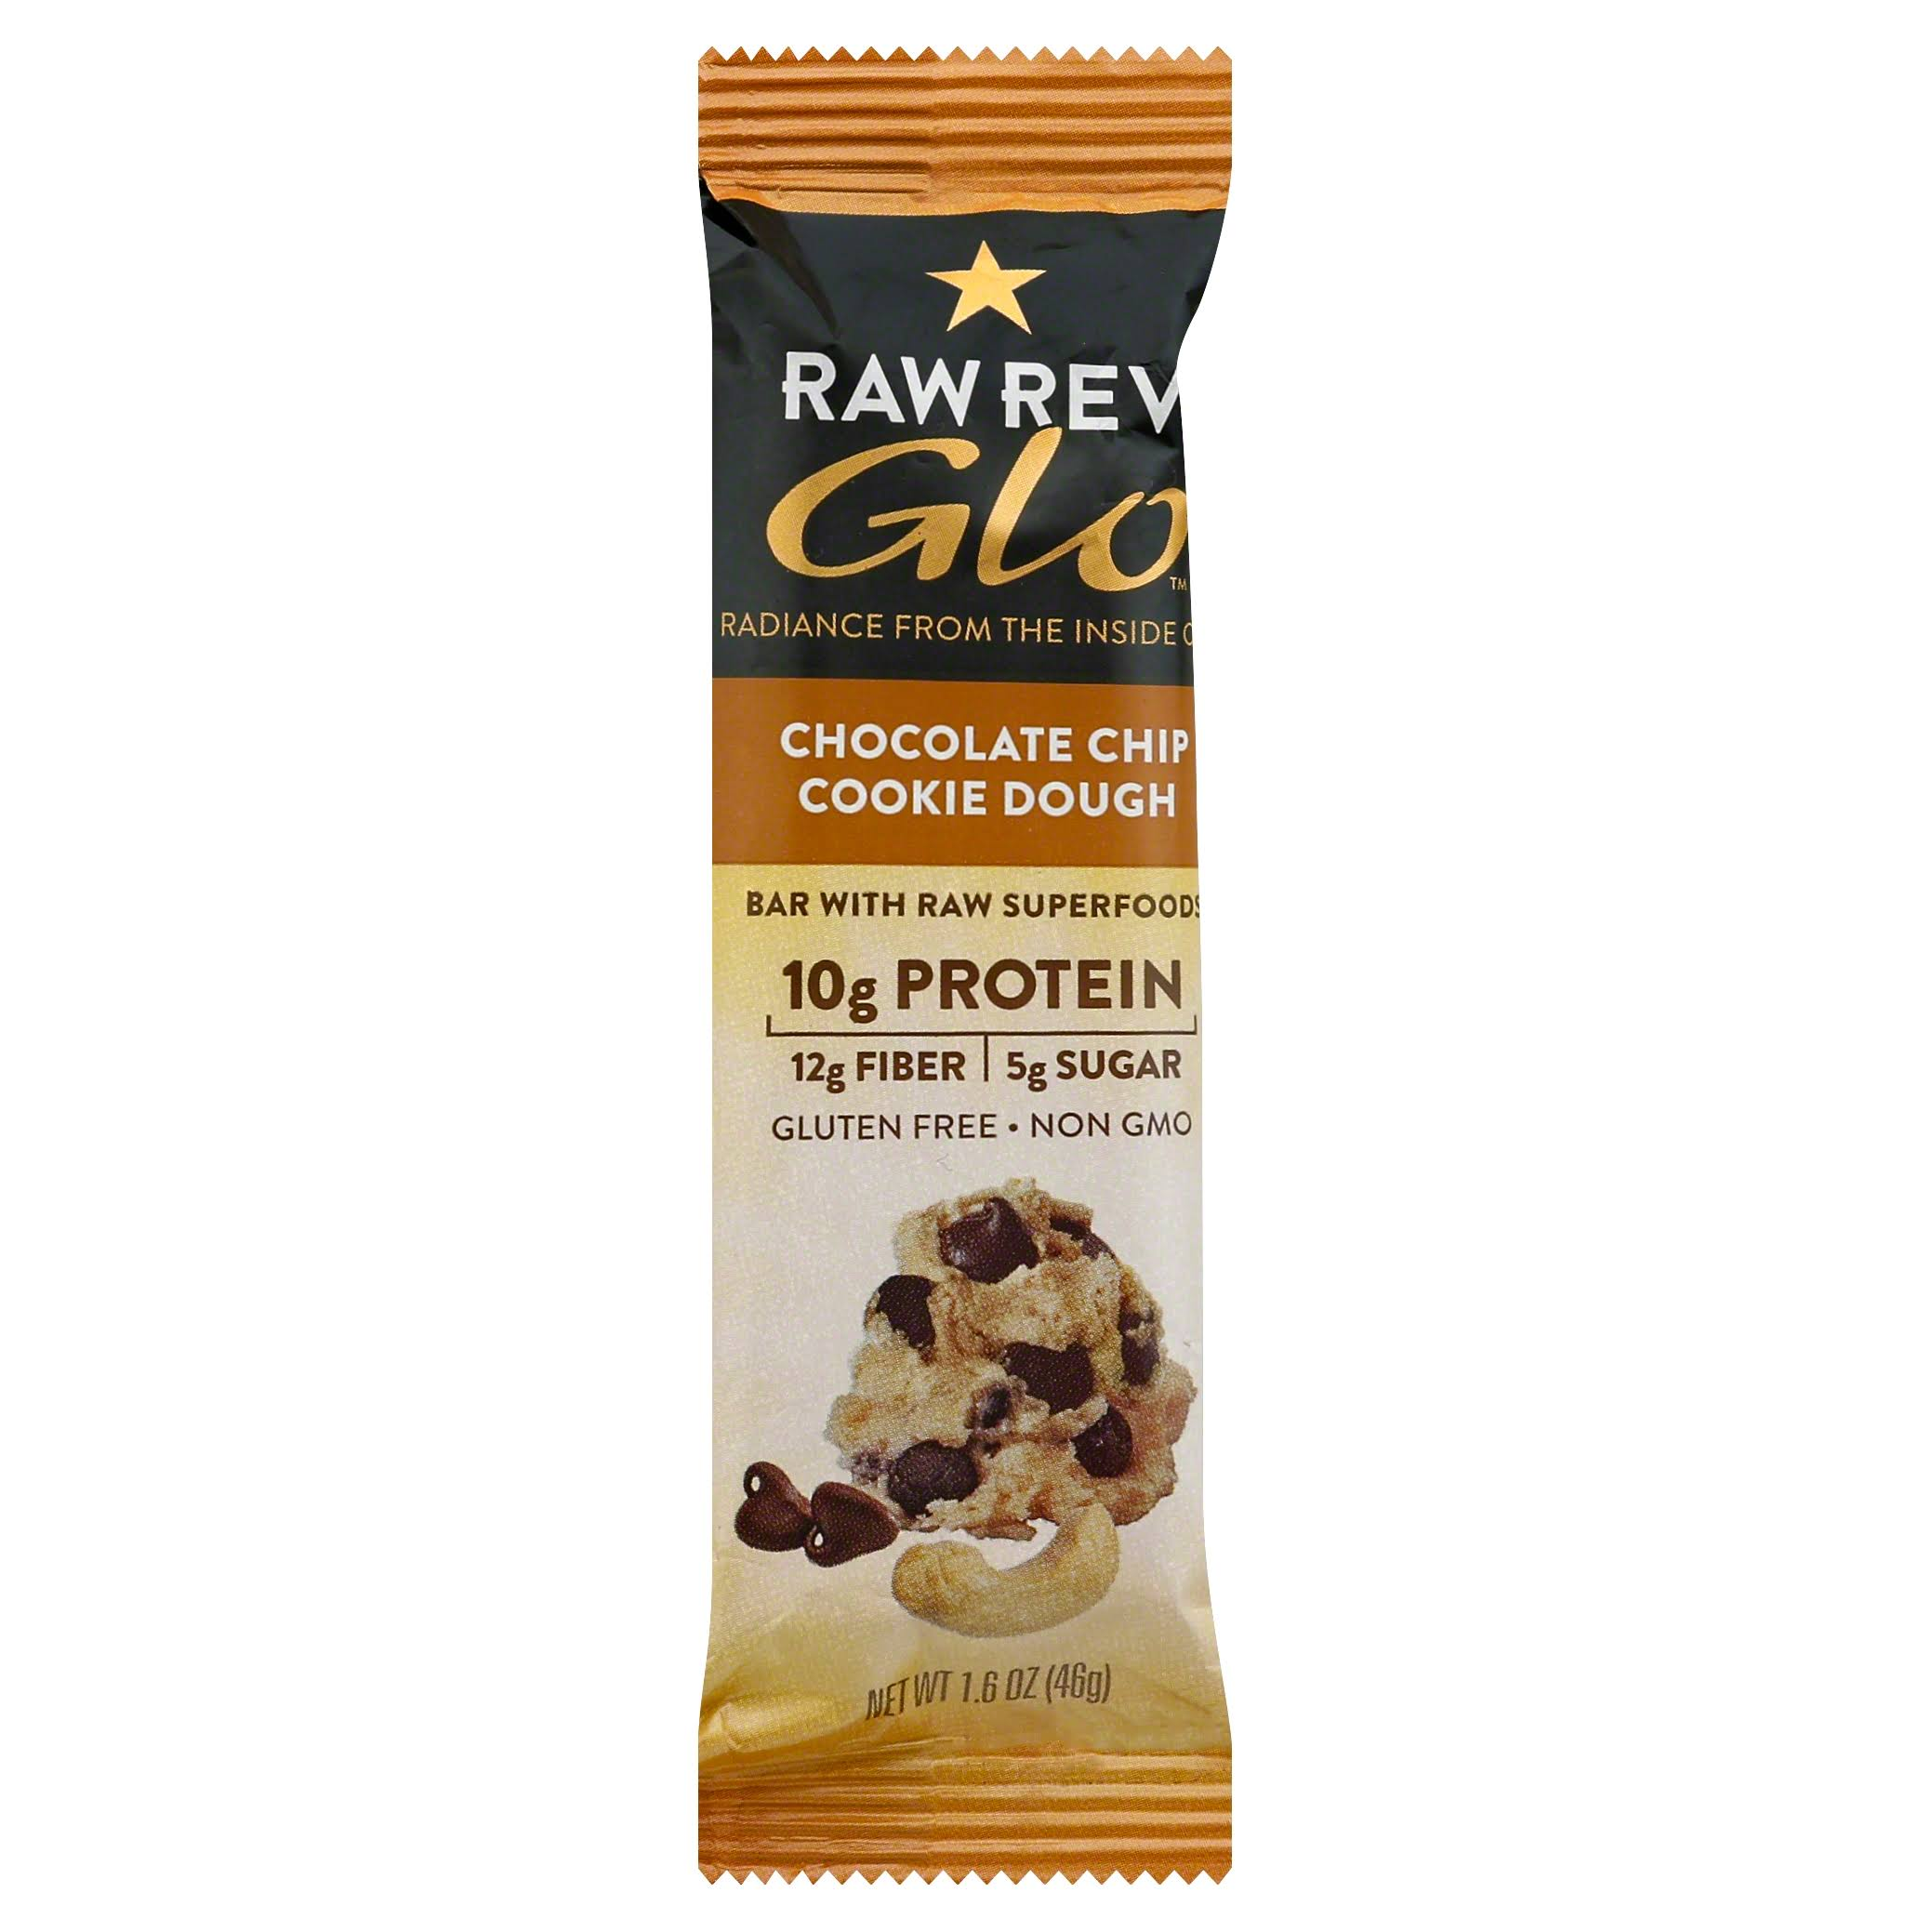 Raw Revolution Glo Bar, with Raw Superfoods, Chocolate Chip Cookie Dough - 1.6 oz